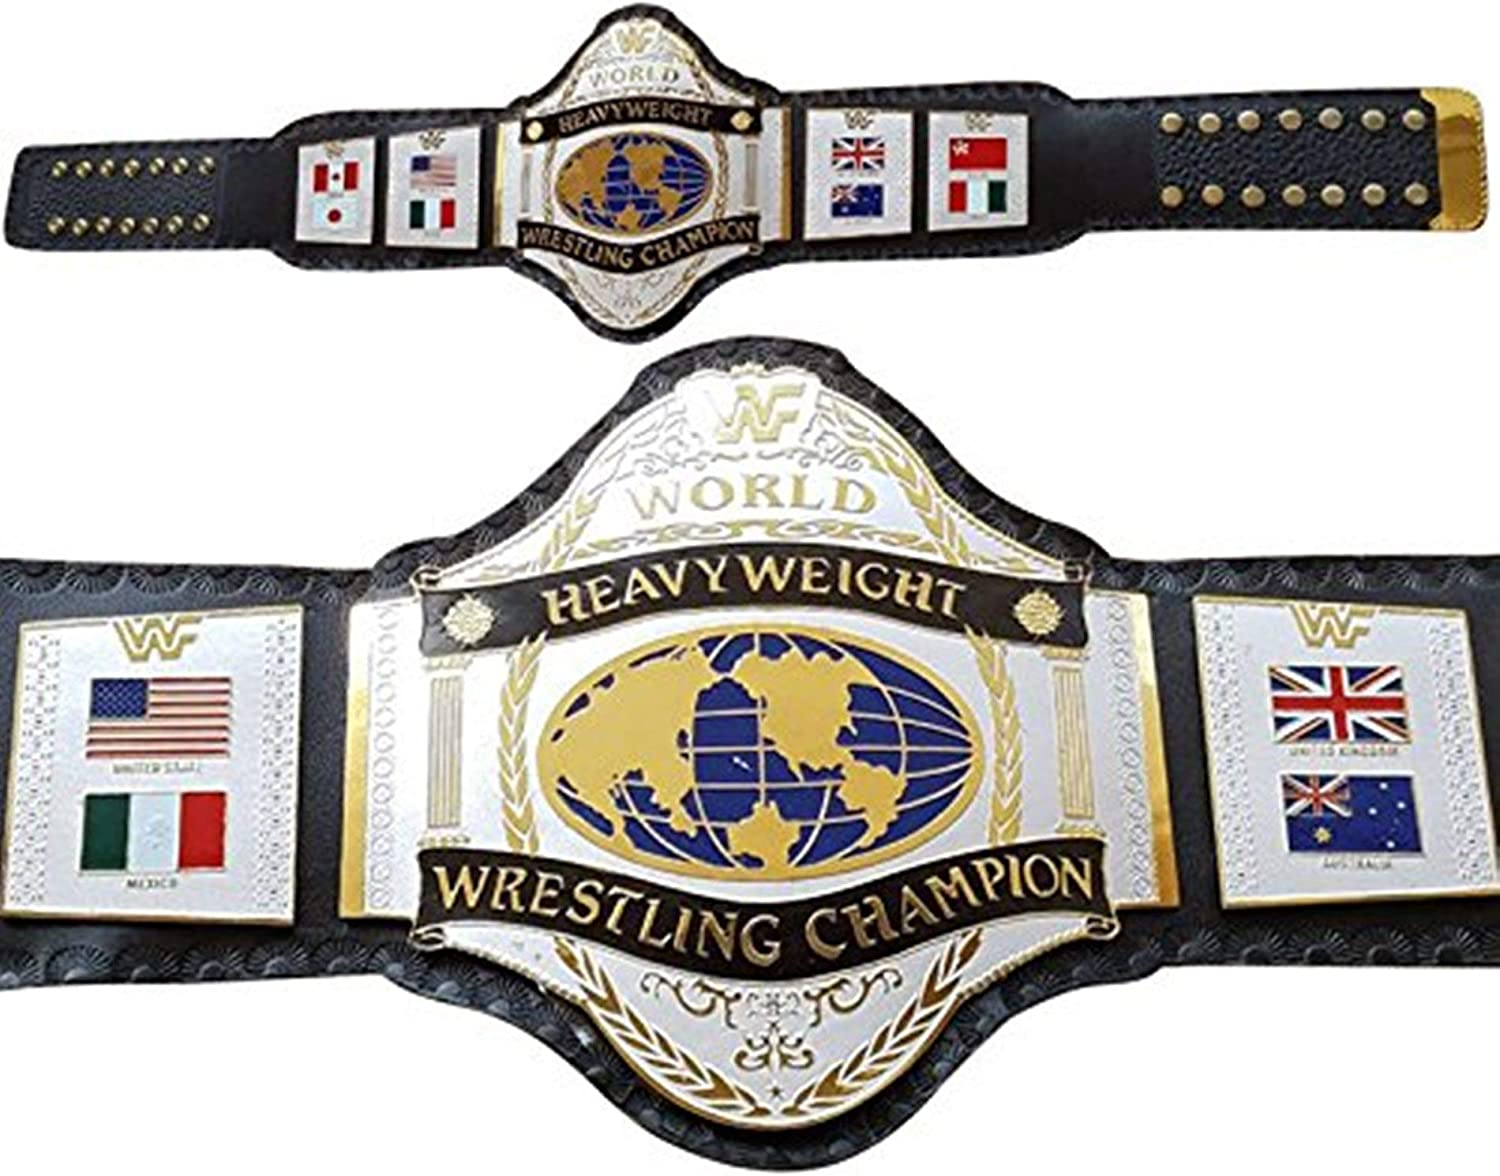 WWF Hulk Hogan 86 World Heavyweight Wrestling Championship Belt Adult (Brand New). 61s-qlTGJcLUL1200_